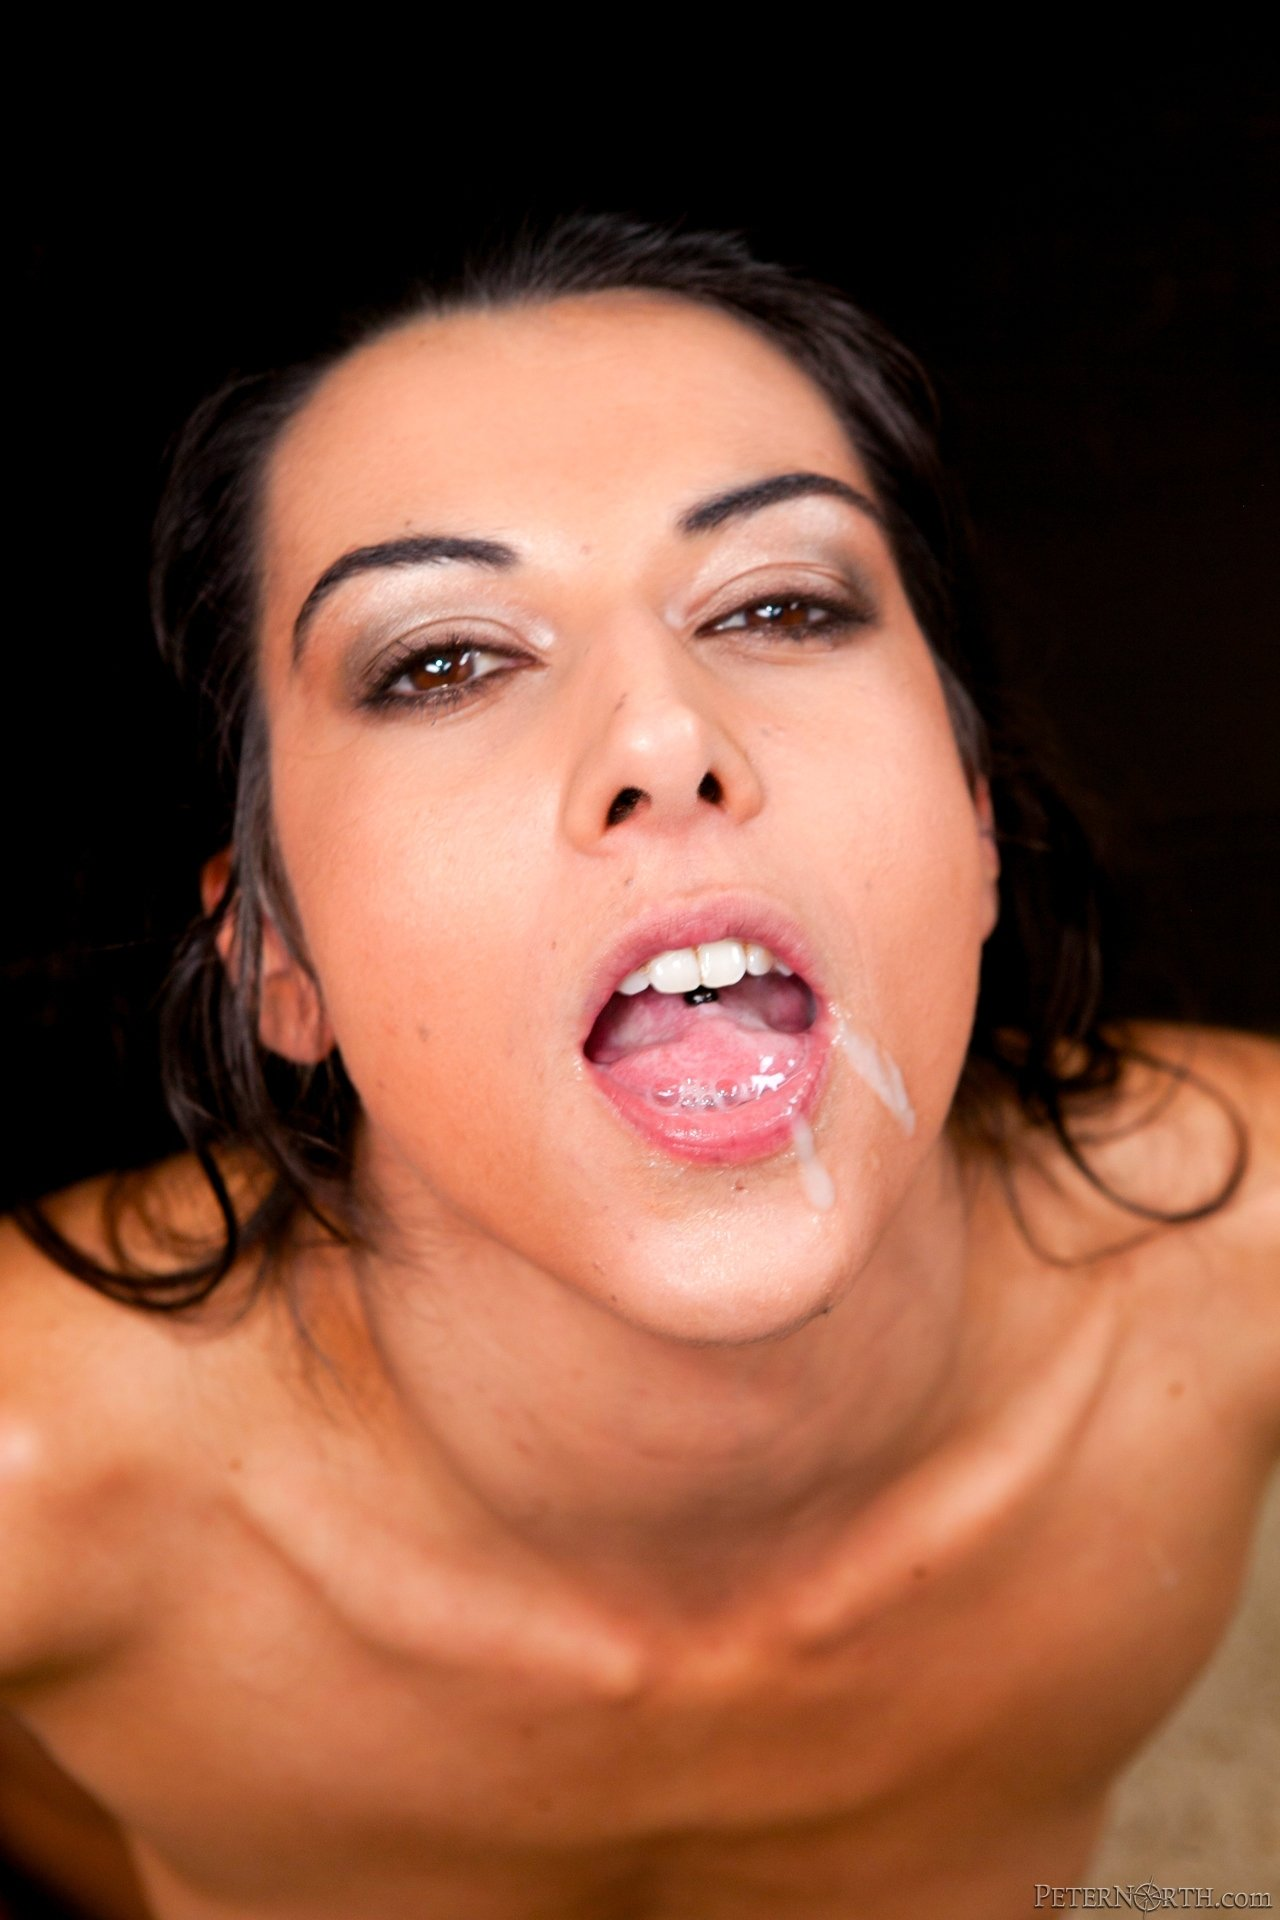 Annabelle french amateur